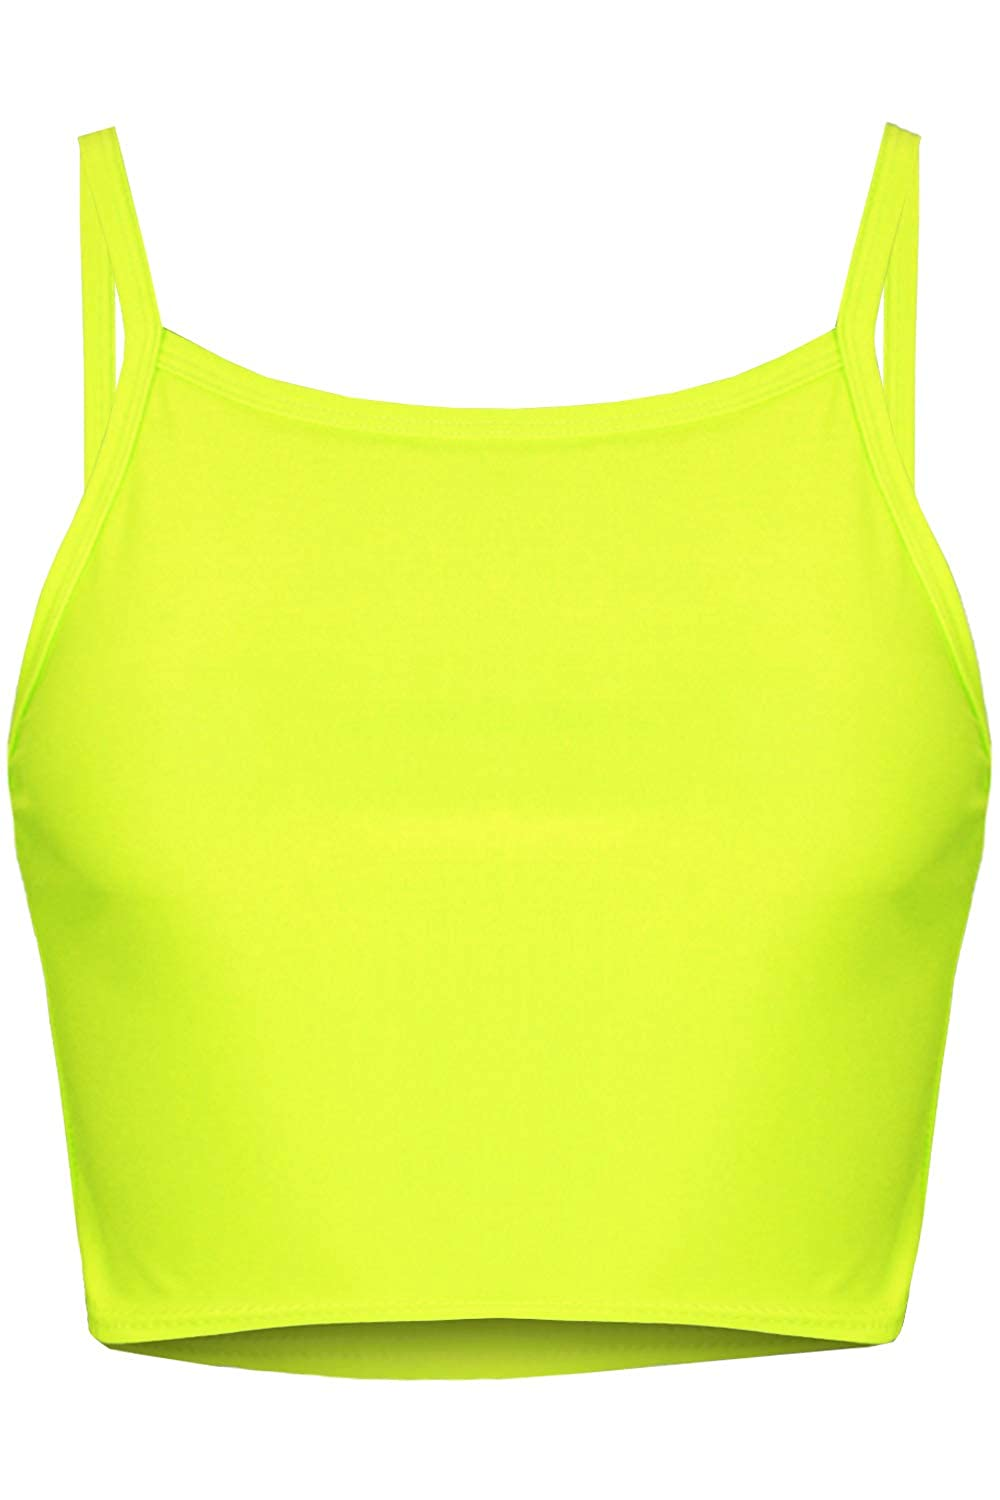 Fashion Star Womens Plain Sleeveless Stretchy Strappy Cami Camisole Bandeau Boobtube Bralet Crop Cropped Top BE JEALOUS